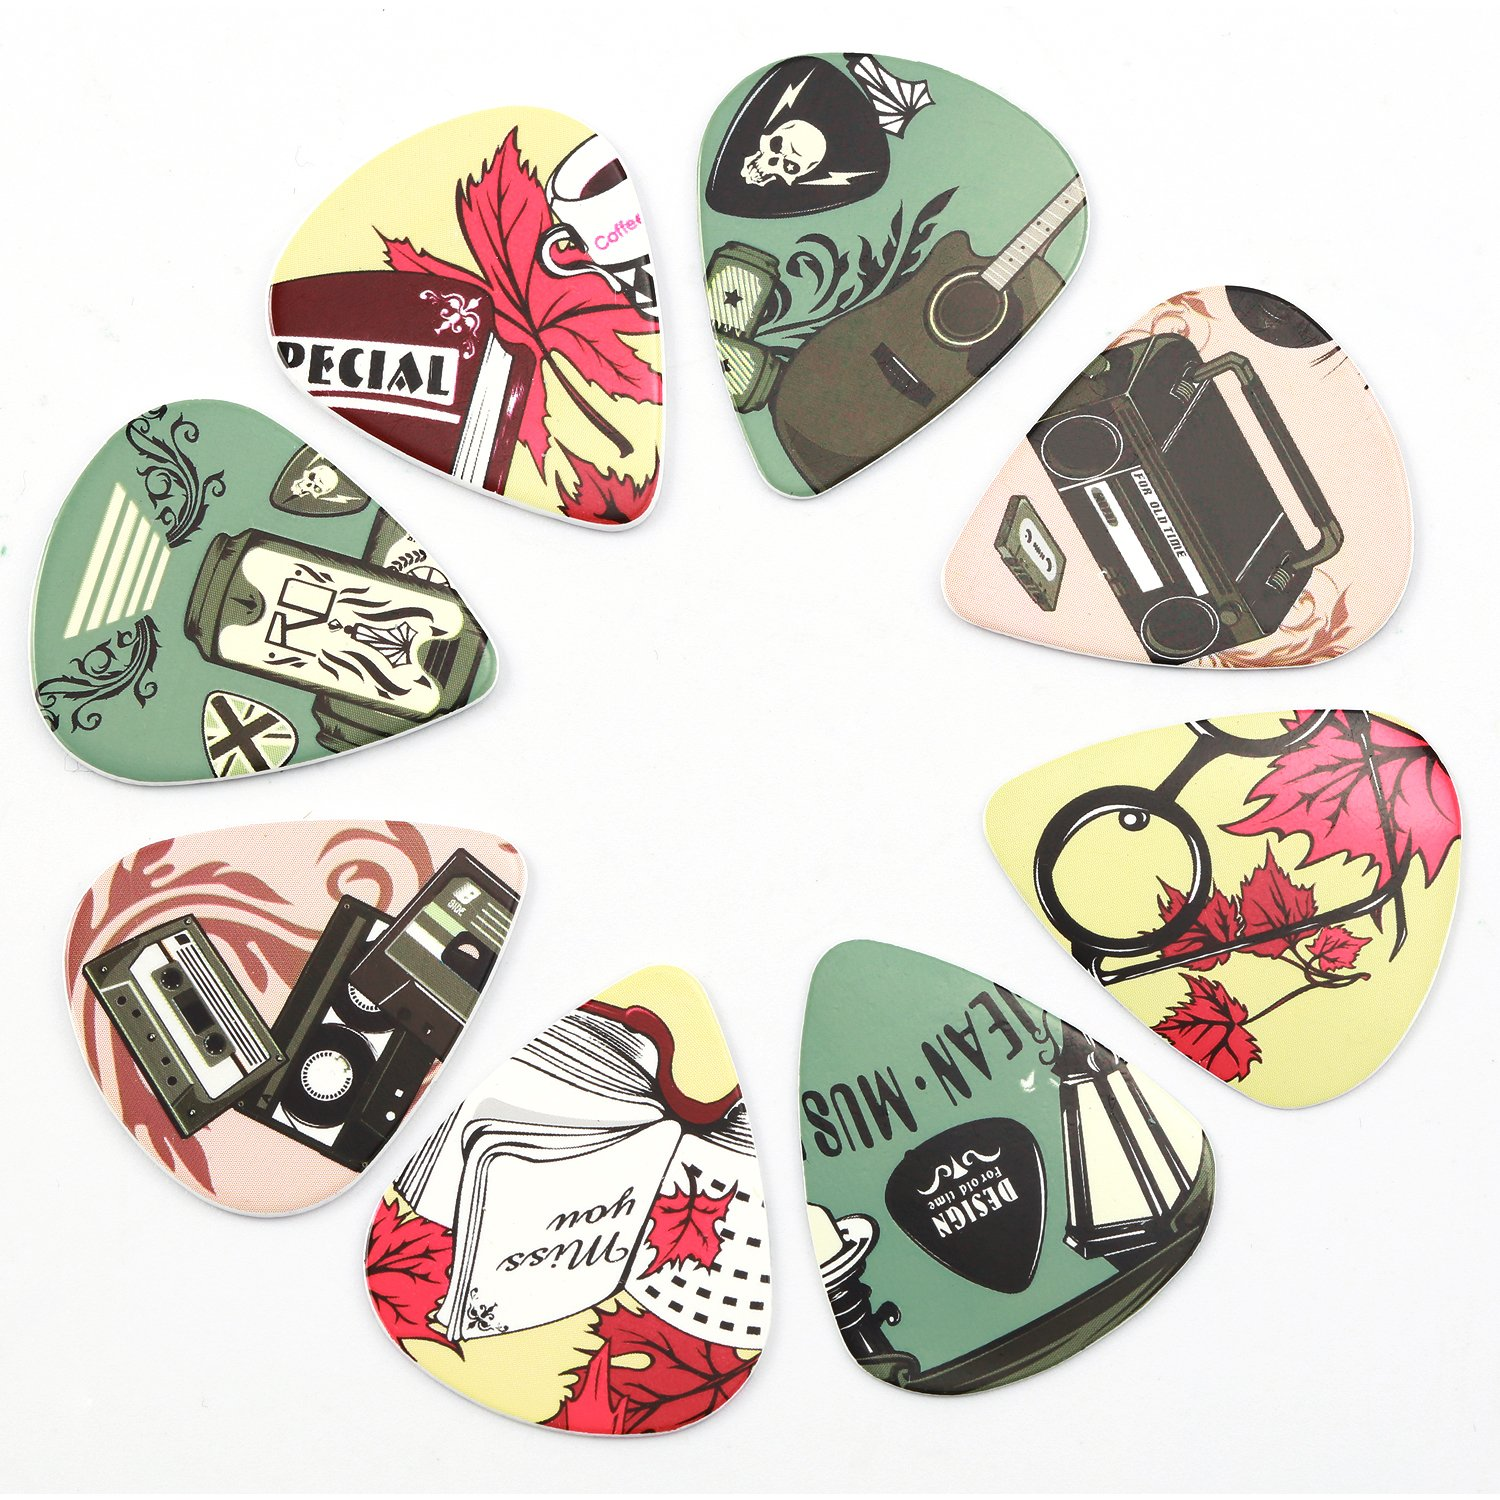 Medium Donner Nostalgia Celluloid Guitar Picks with Key Chain Pick Holder 16 Pack Includes Thin Heavy /& Extra Heavy Gauges